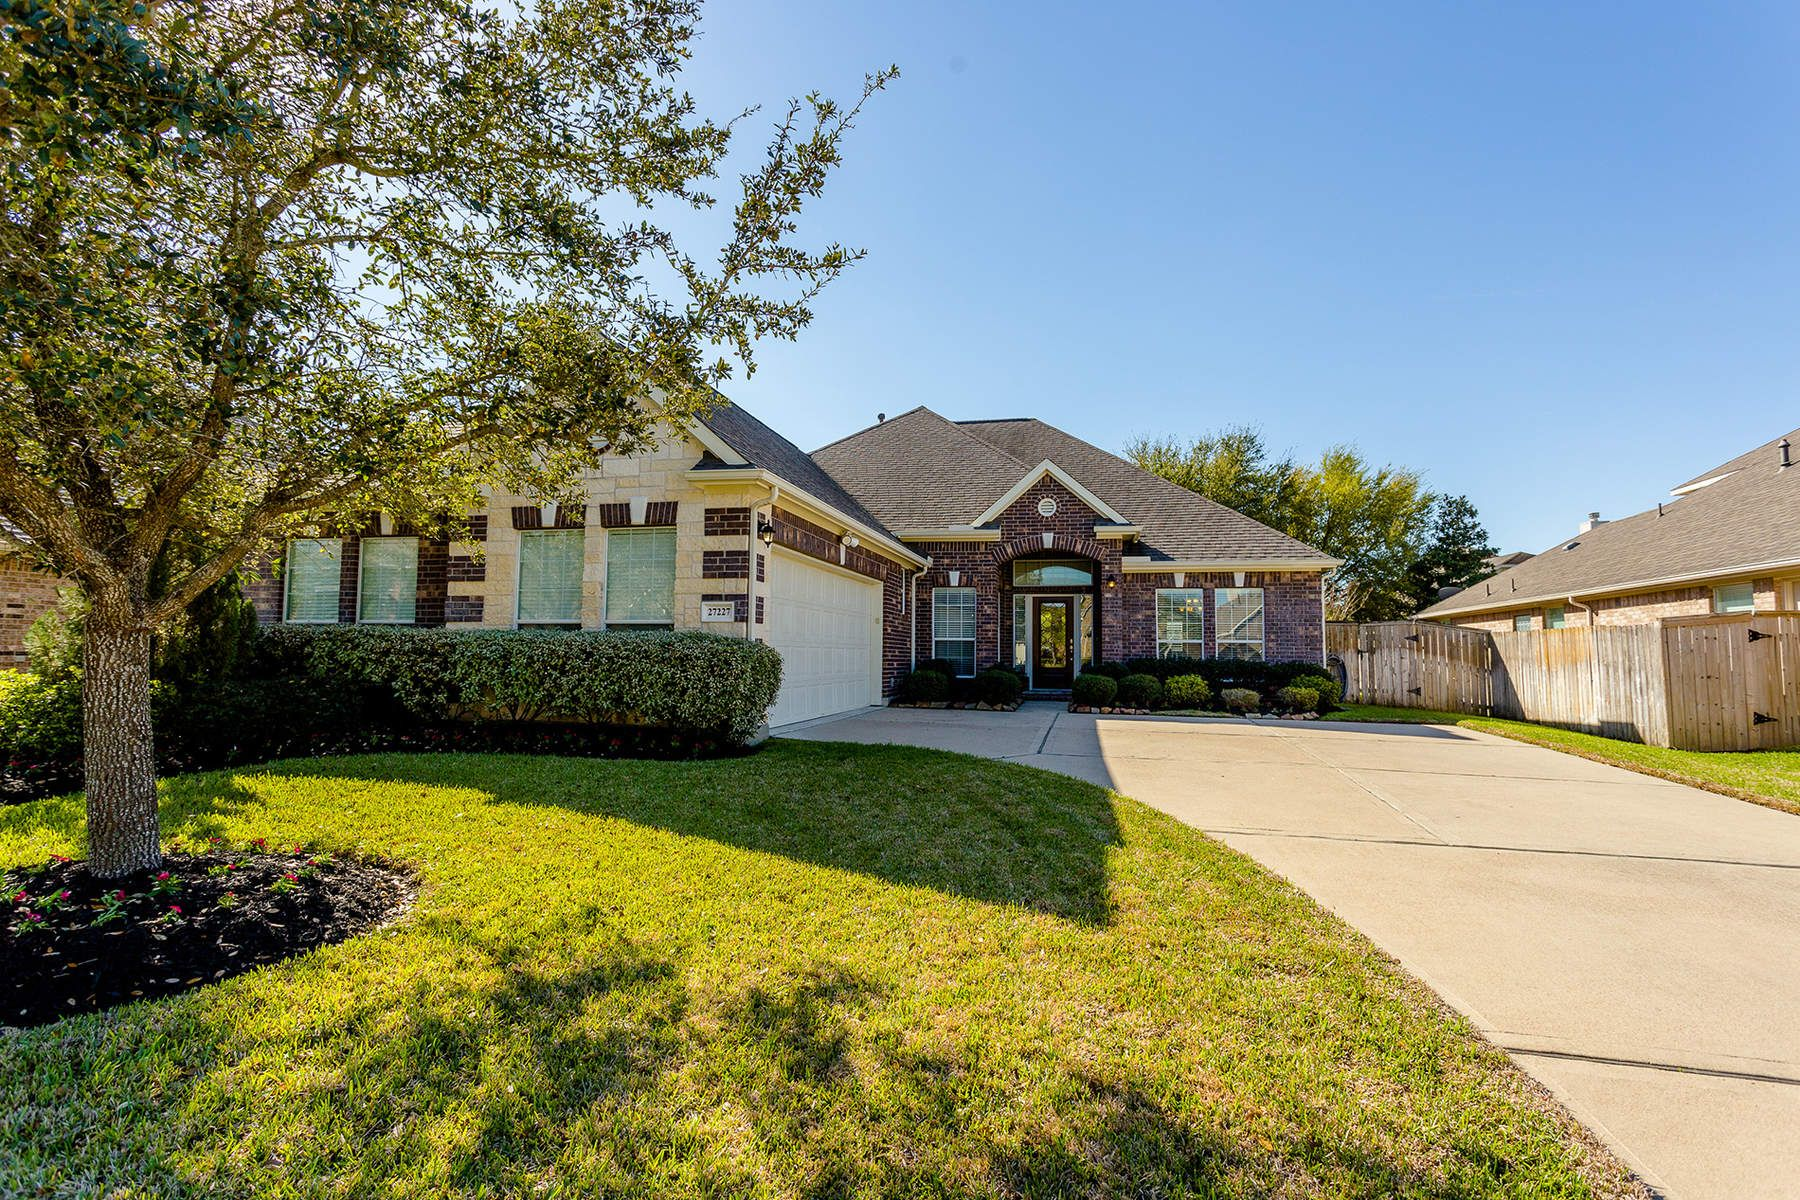 Single Family Home for Sale at 27227 Horseshoe Falls Lane 27227 Horseshoe Falls Lane Cypress, Texas 77433 United States